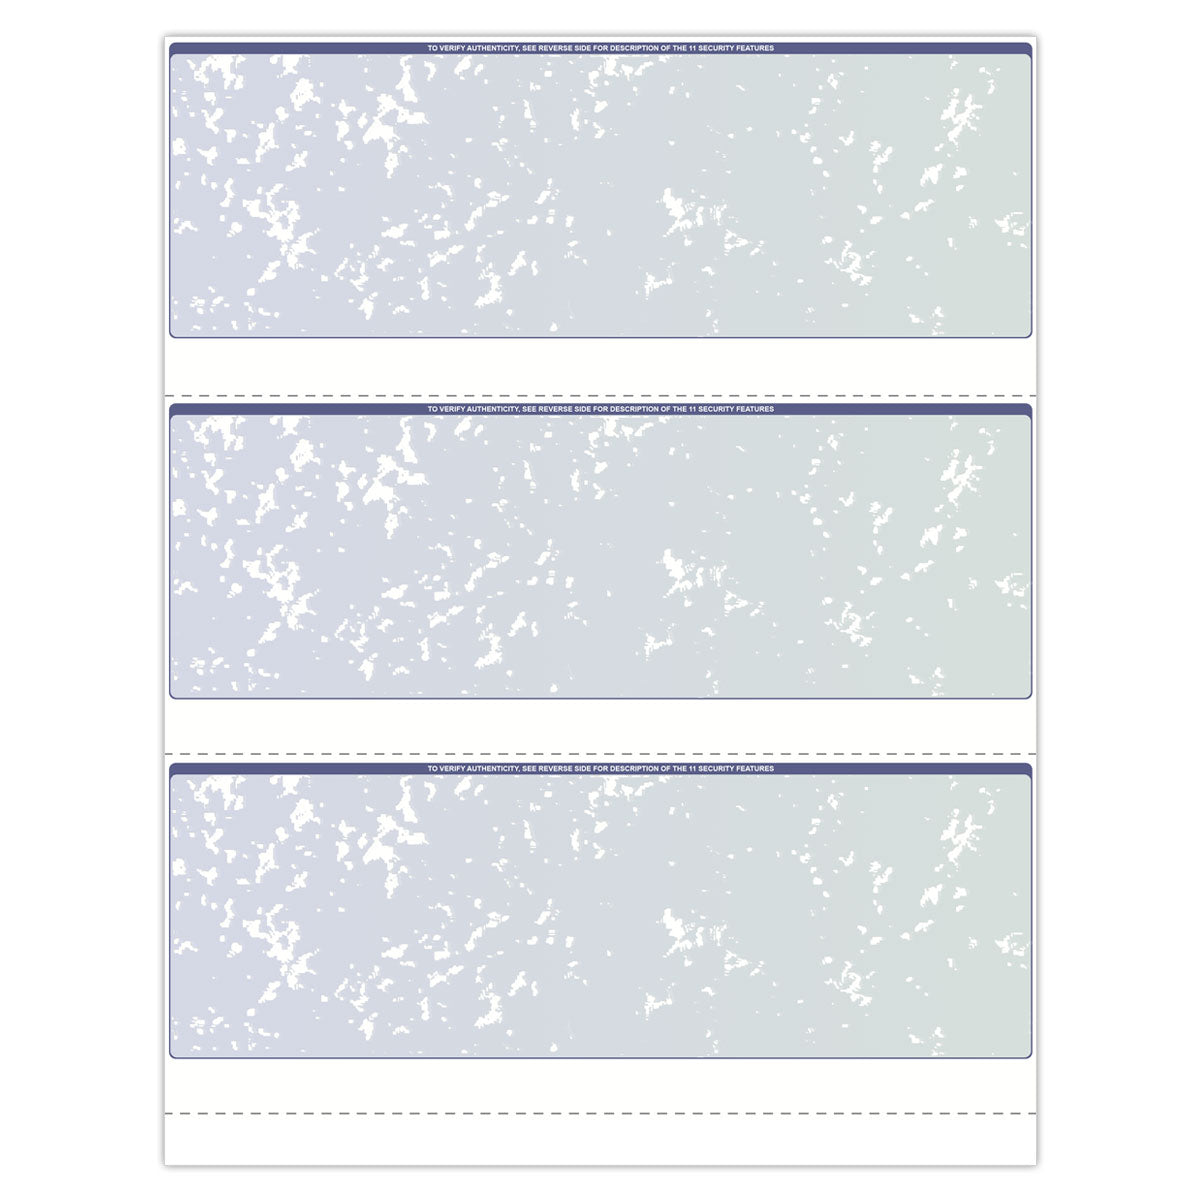 3-Per-Page Format Blank Check Paper - Check Depot